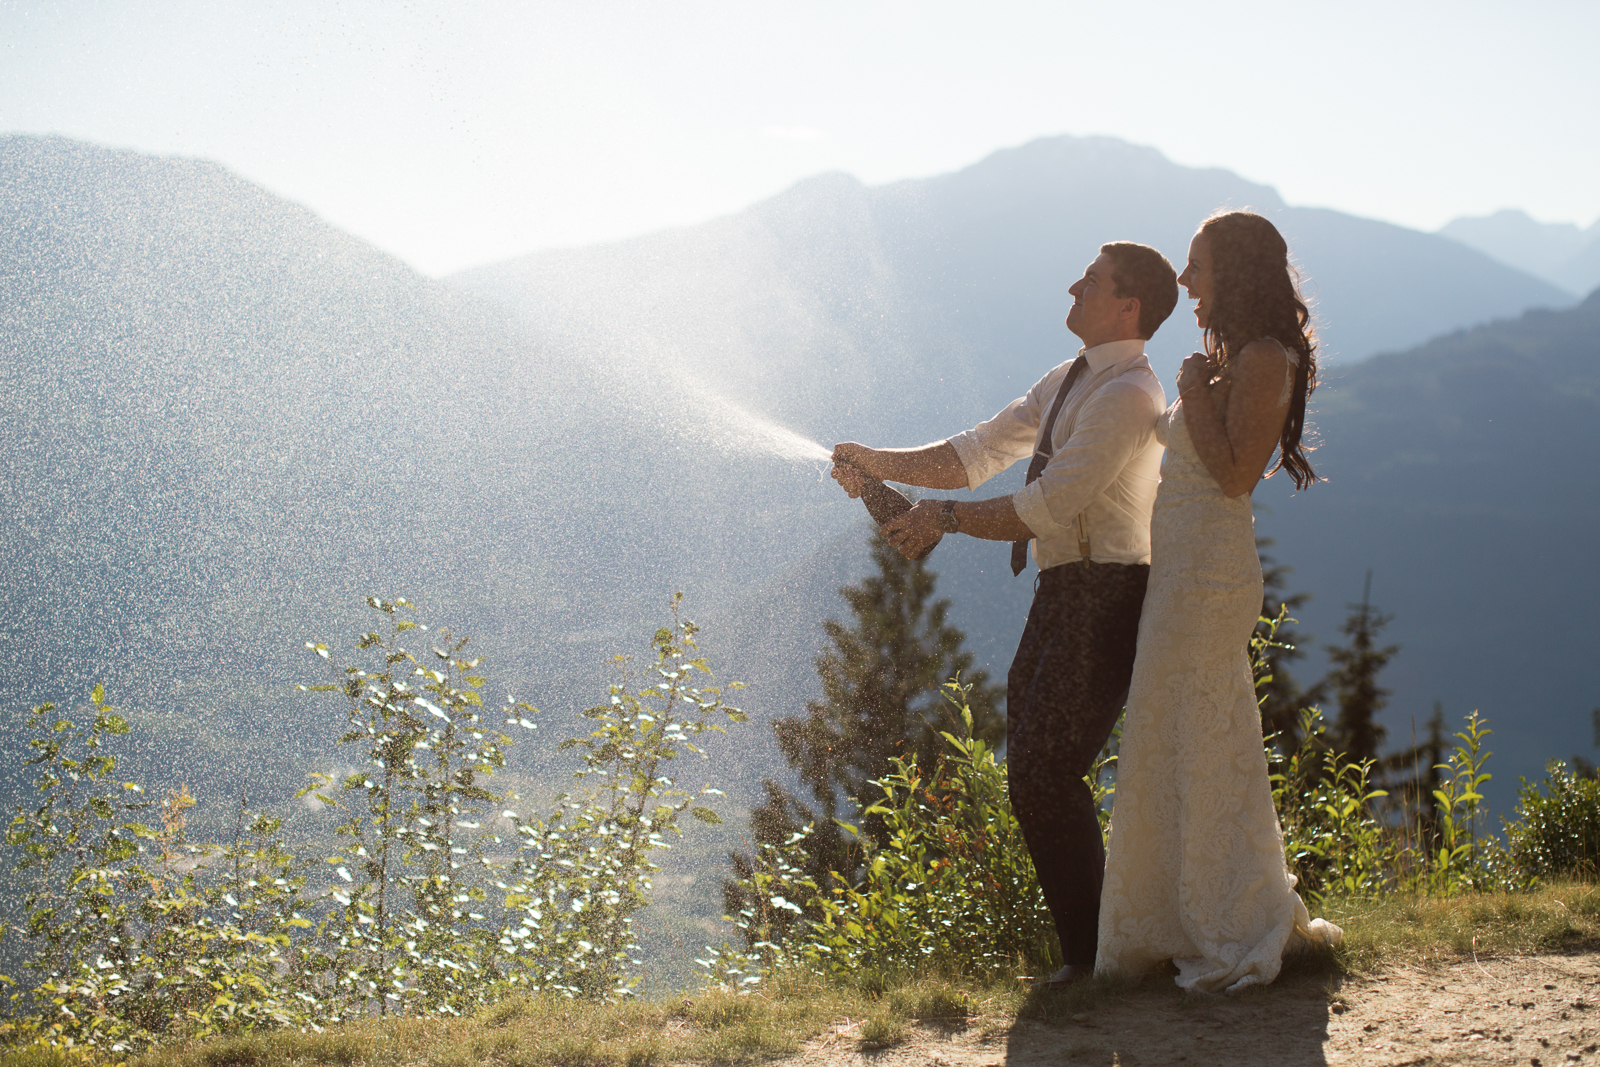 64Andrew_Pavlidis_Photography_Jess_and_Tristan_Revelstoke_Elopement_Calgary_Wedding_Photographer-9253